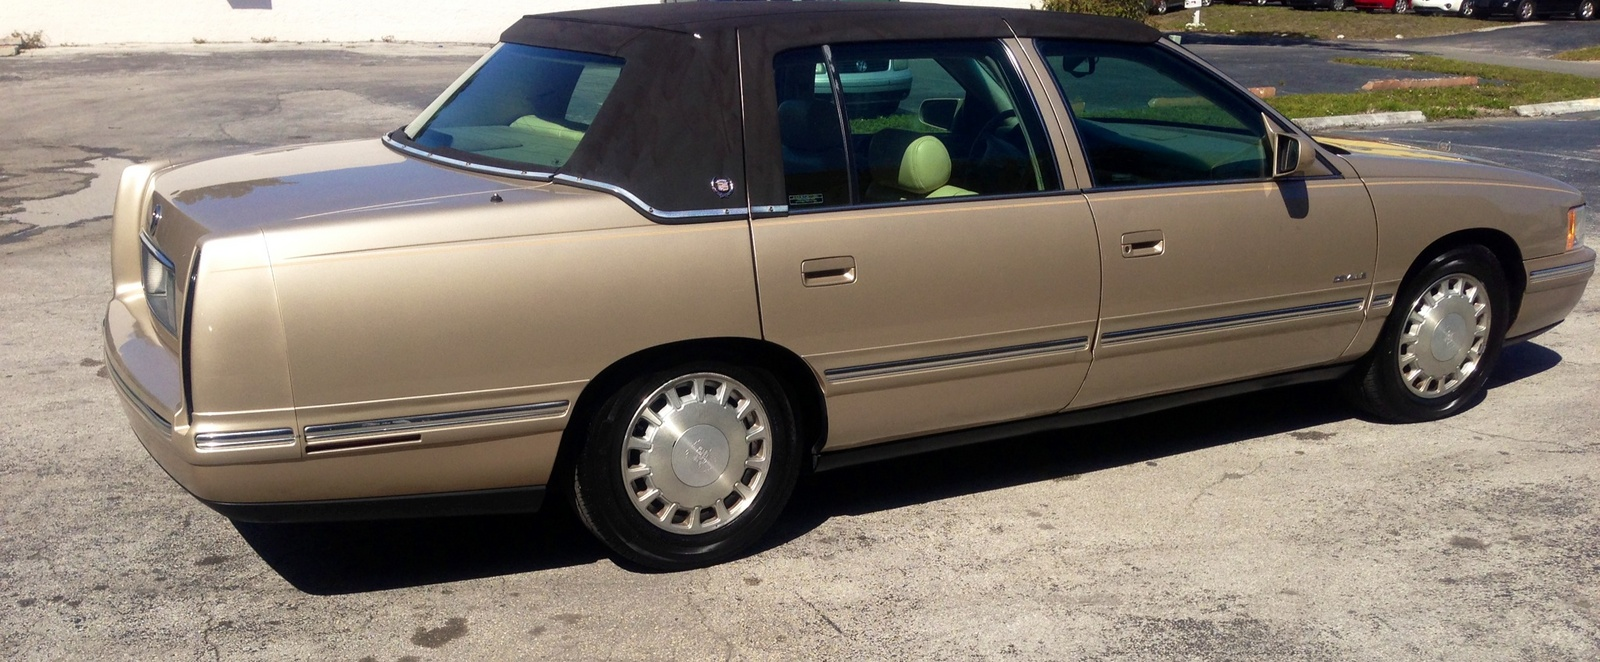 1998 cadillac deville trim information cargurus. Cars Review. Best American Auto & Cars Review